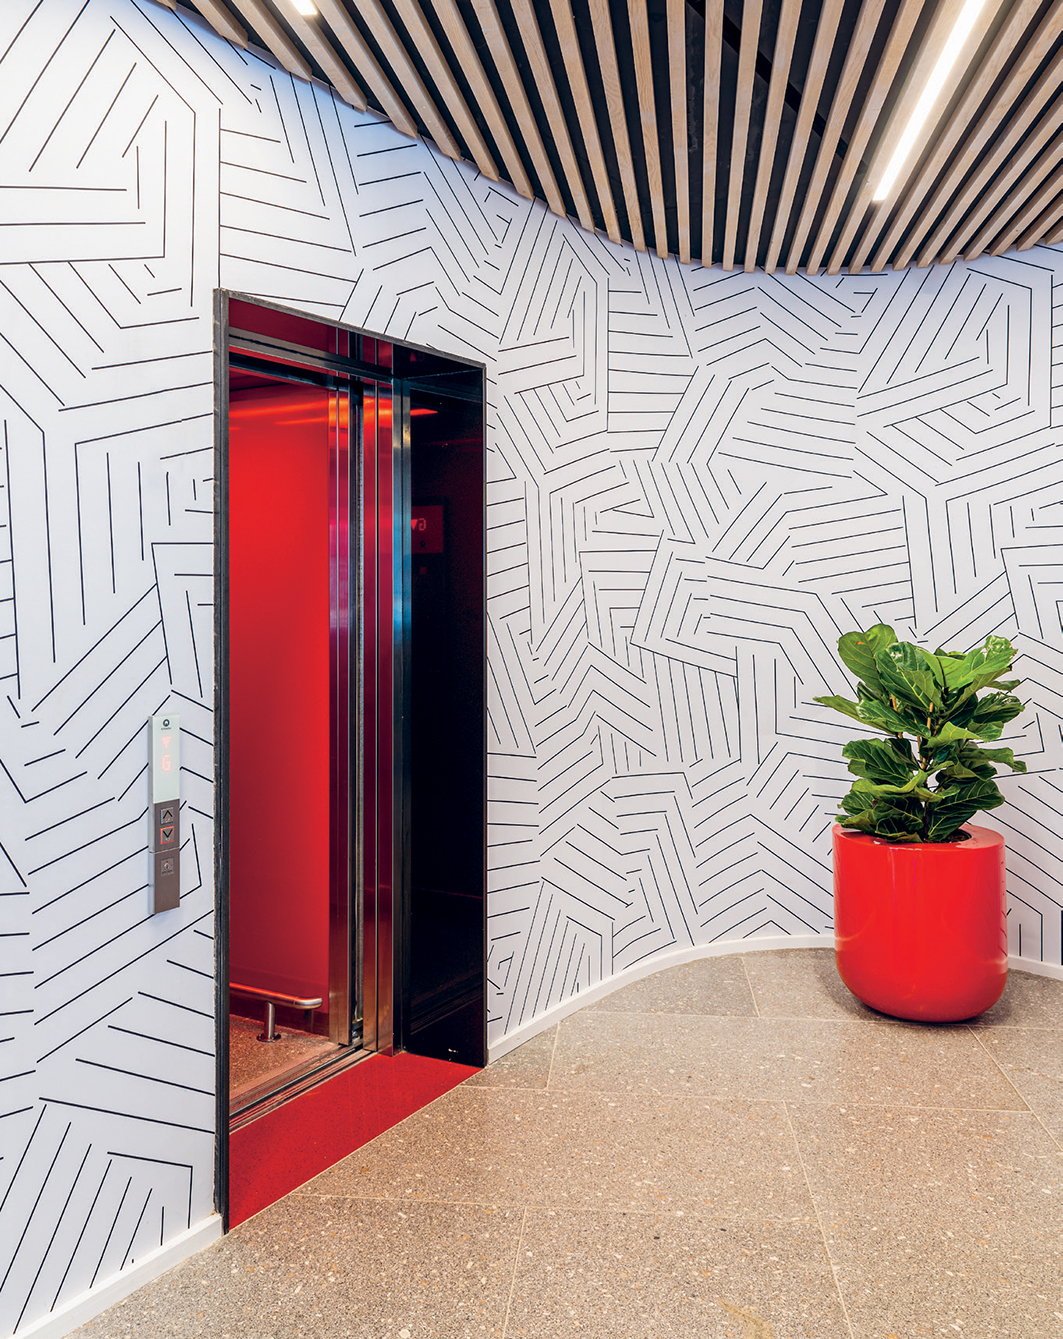 A Styler planter is offset by Cara Saven's Missing The Point wallpaper.